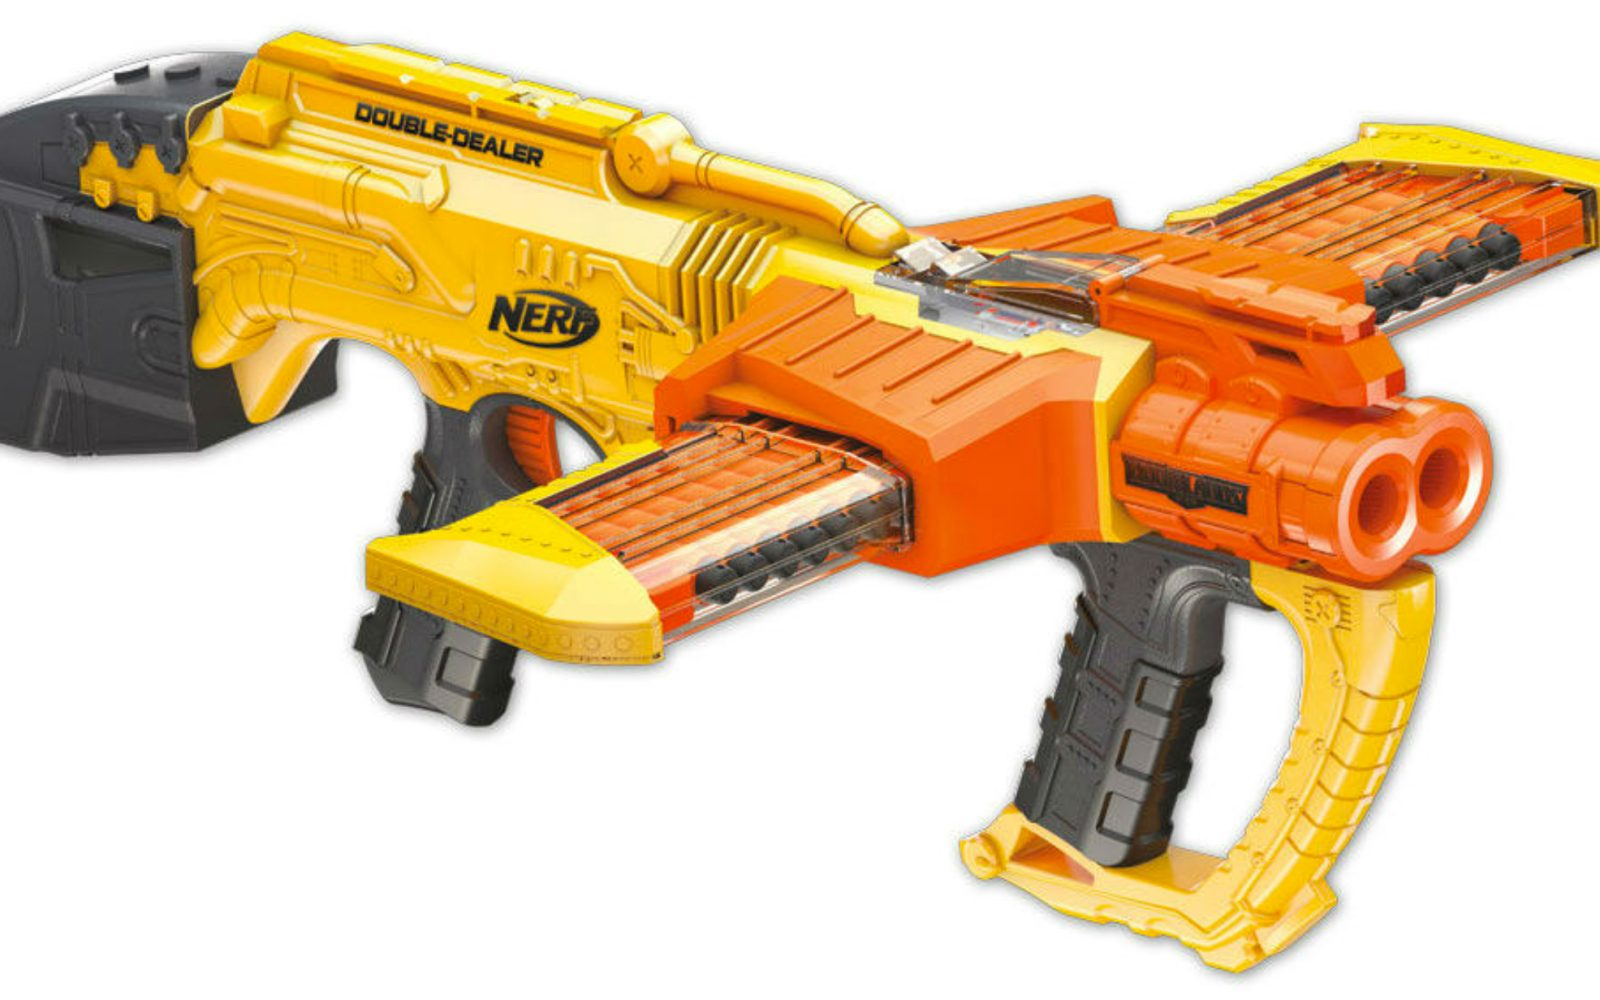 You have to see NERF's new Crossbow and Zombie Brainsaw that are